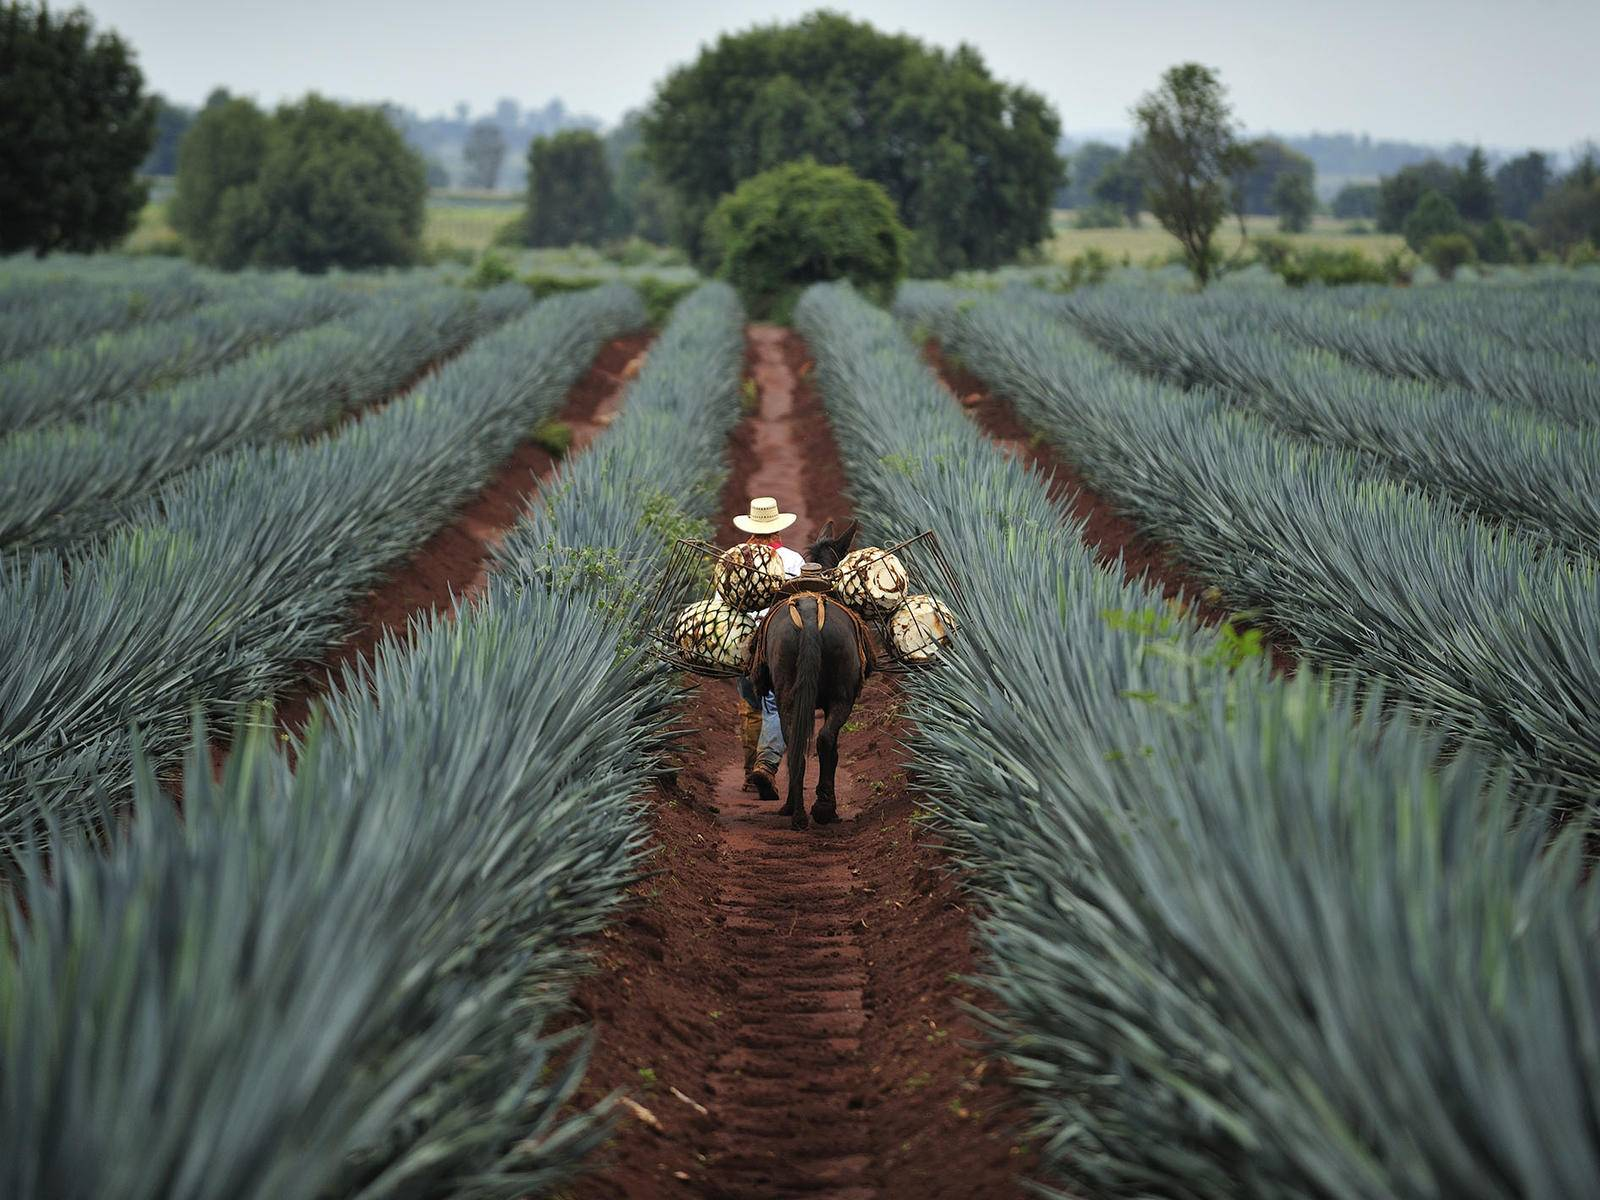 Farm worker walking with donkey in field of agave plants Mexico